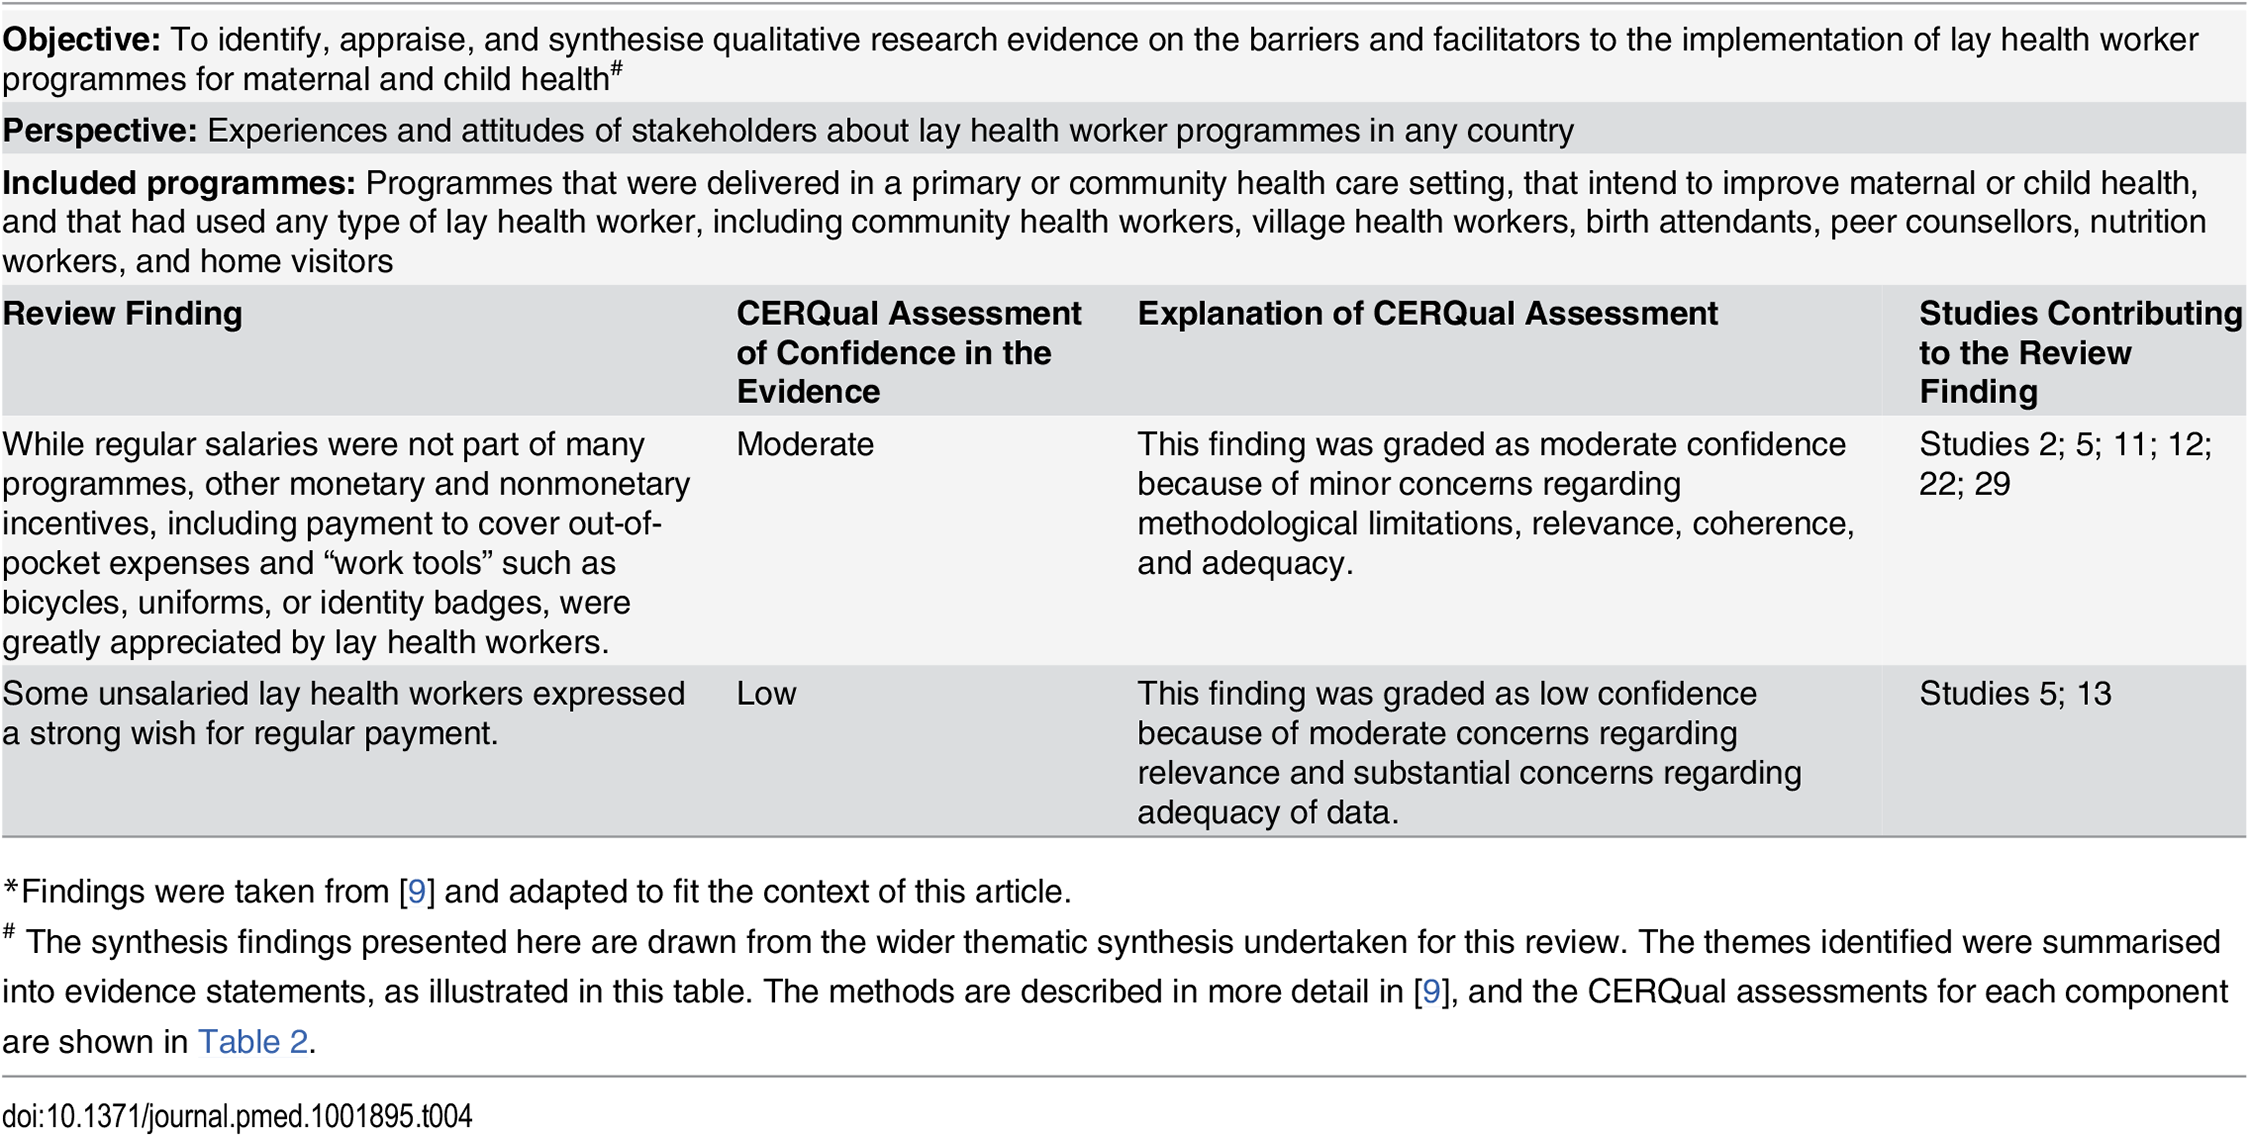 Example of a CERQual Summary of Qualitative Findings table<em class=&quot;ref&quot;>*</em><em class=&quot;ref&quot;><sup>#</sup></em>.